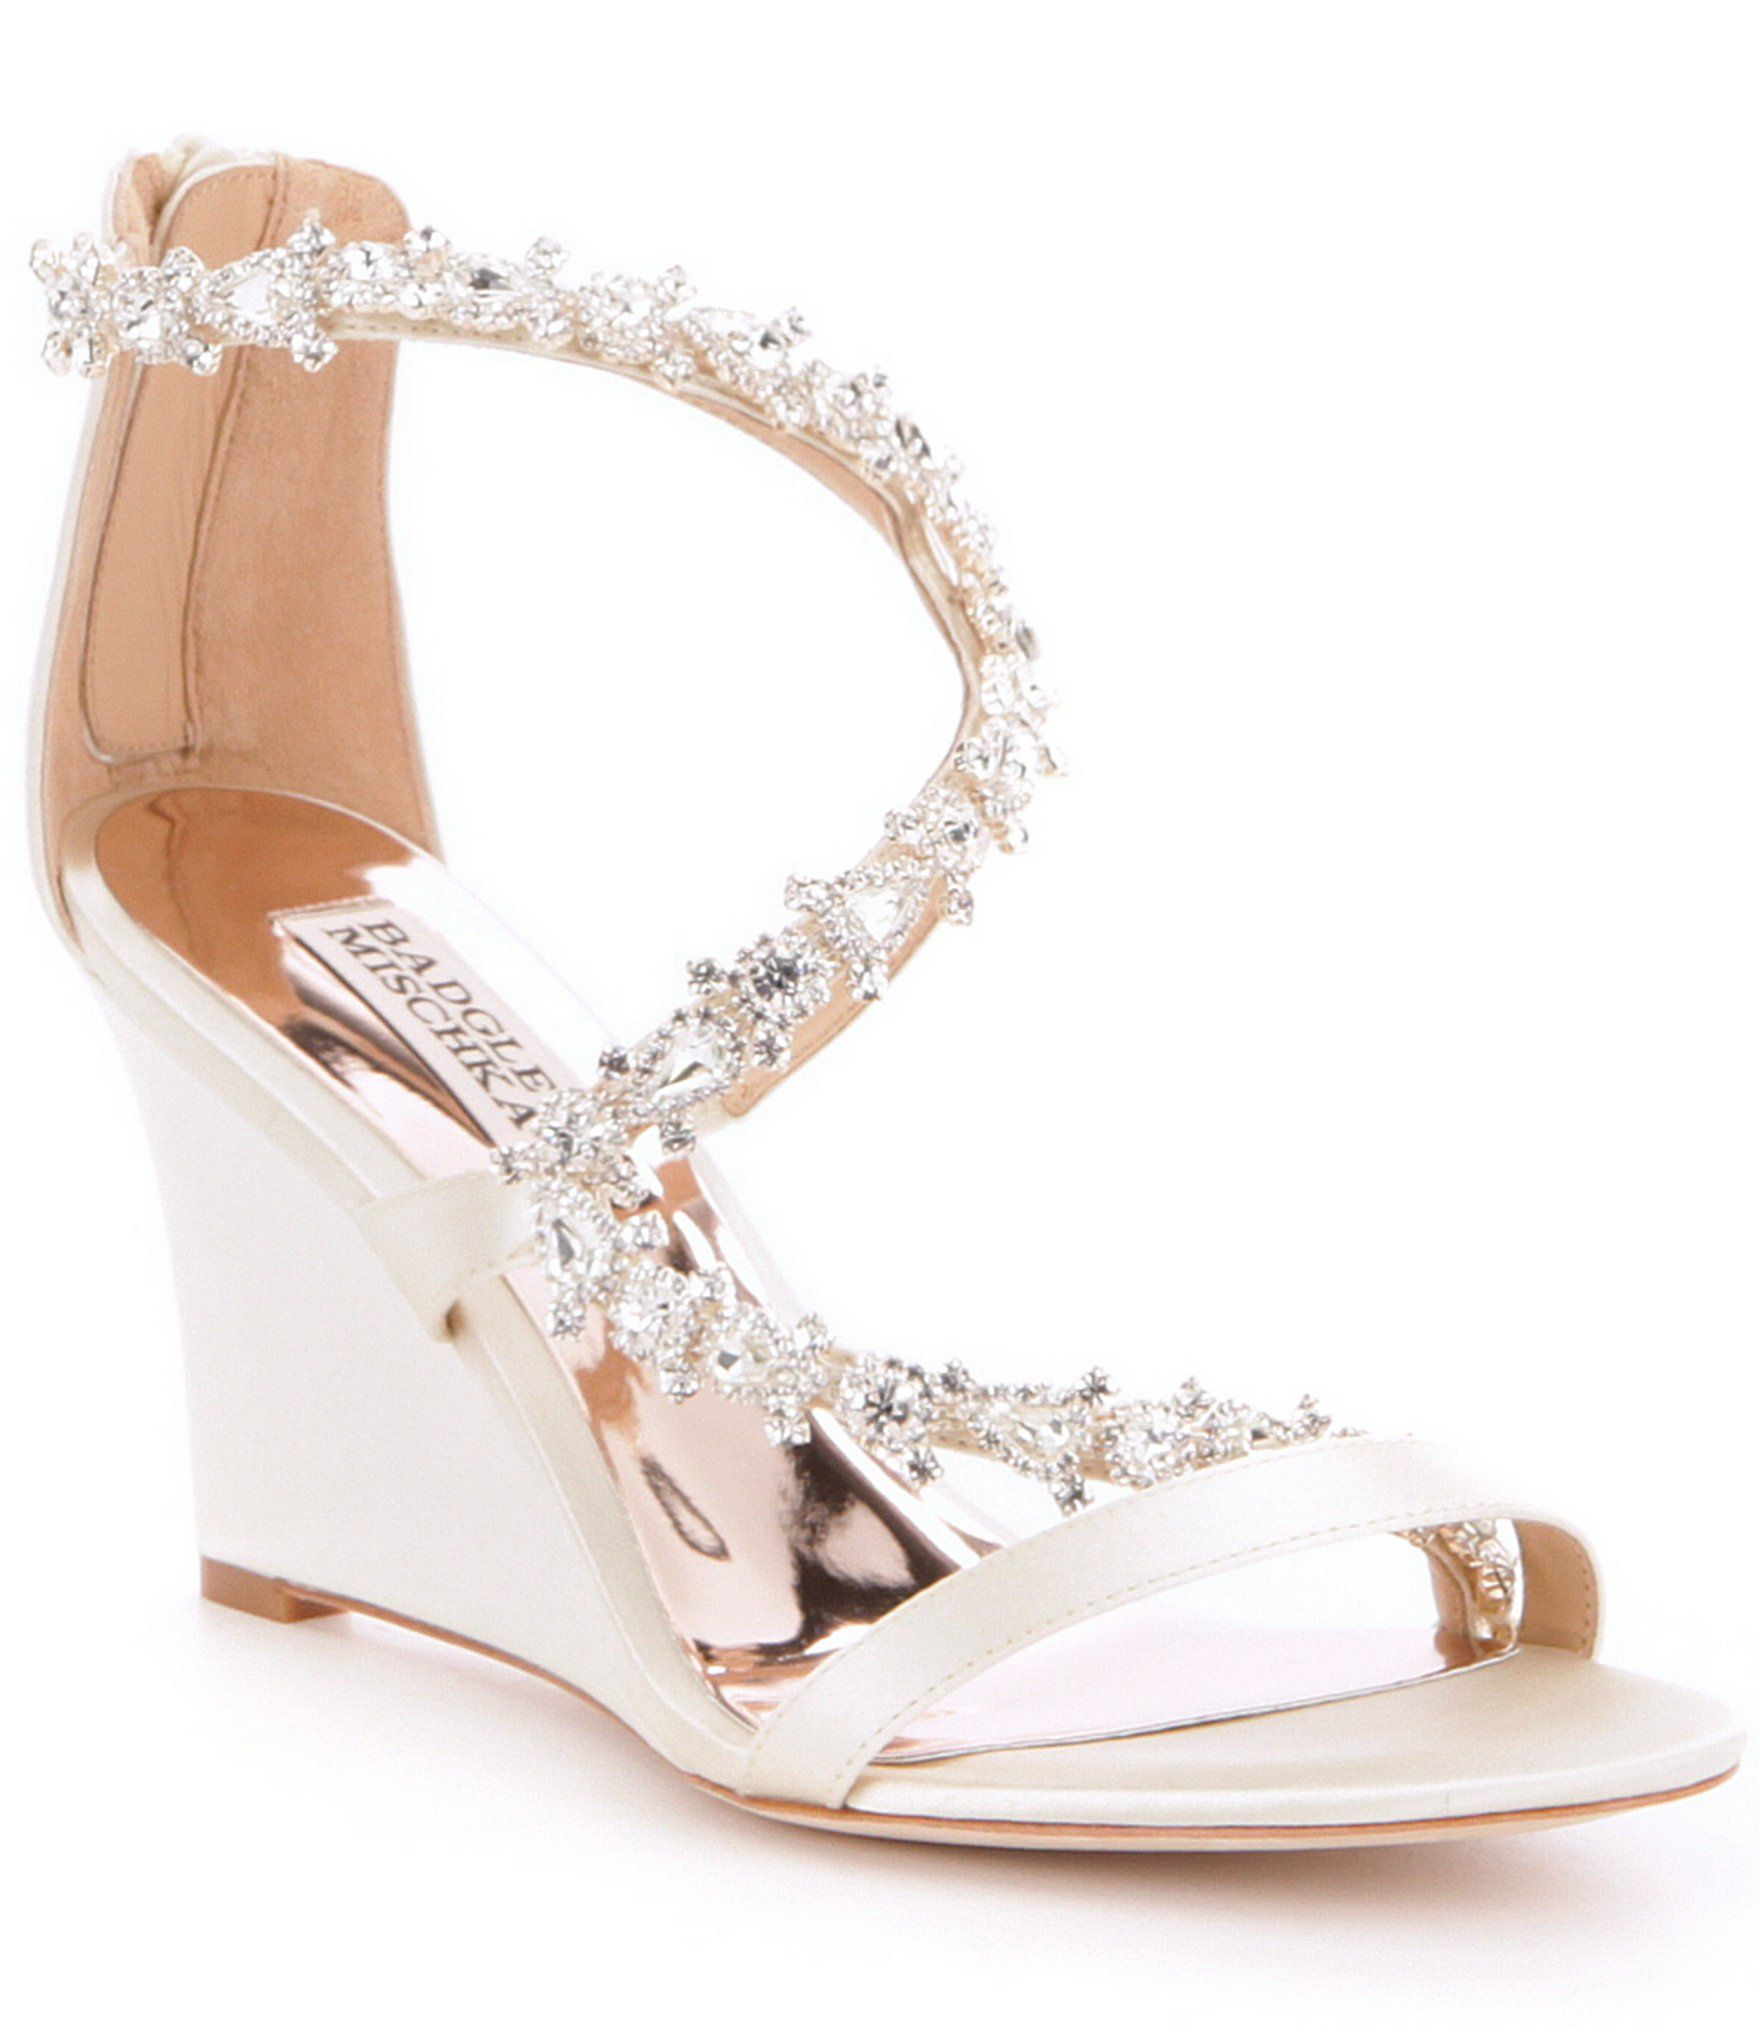 Dillards Bridal Shoes Wedges Wedding Shoes Heels Bridal Sandals Wedge